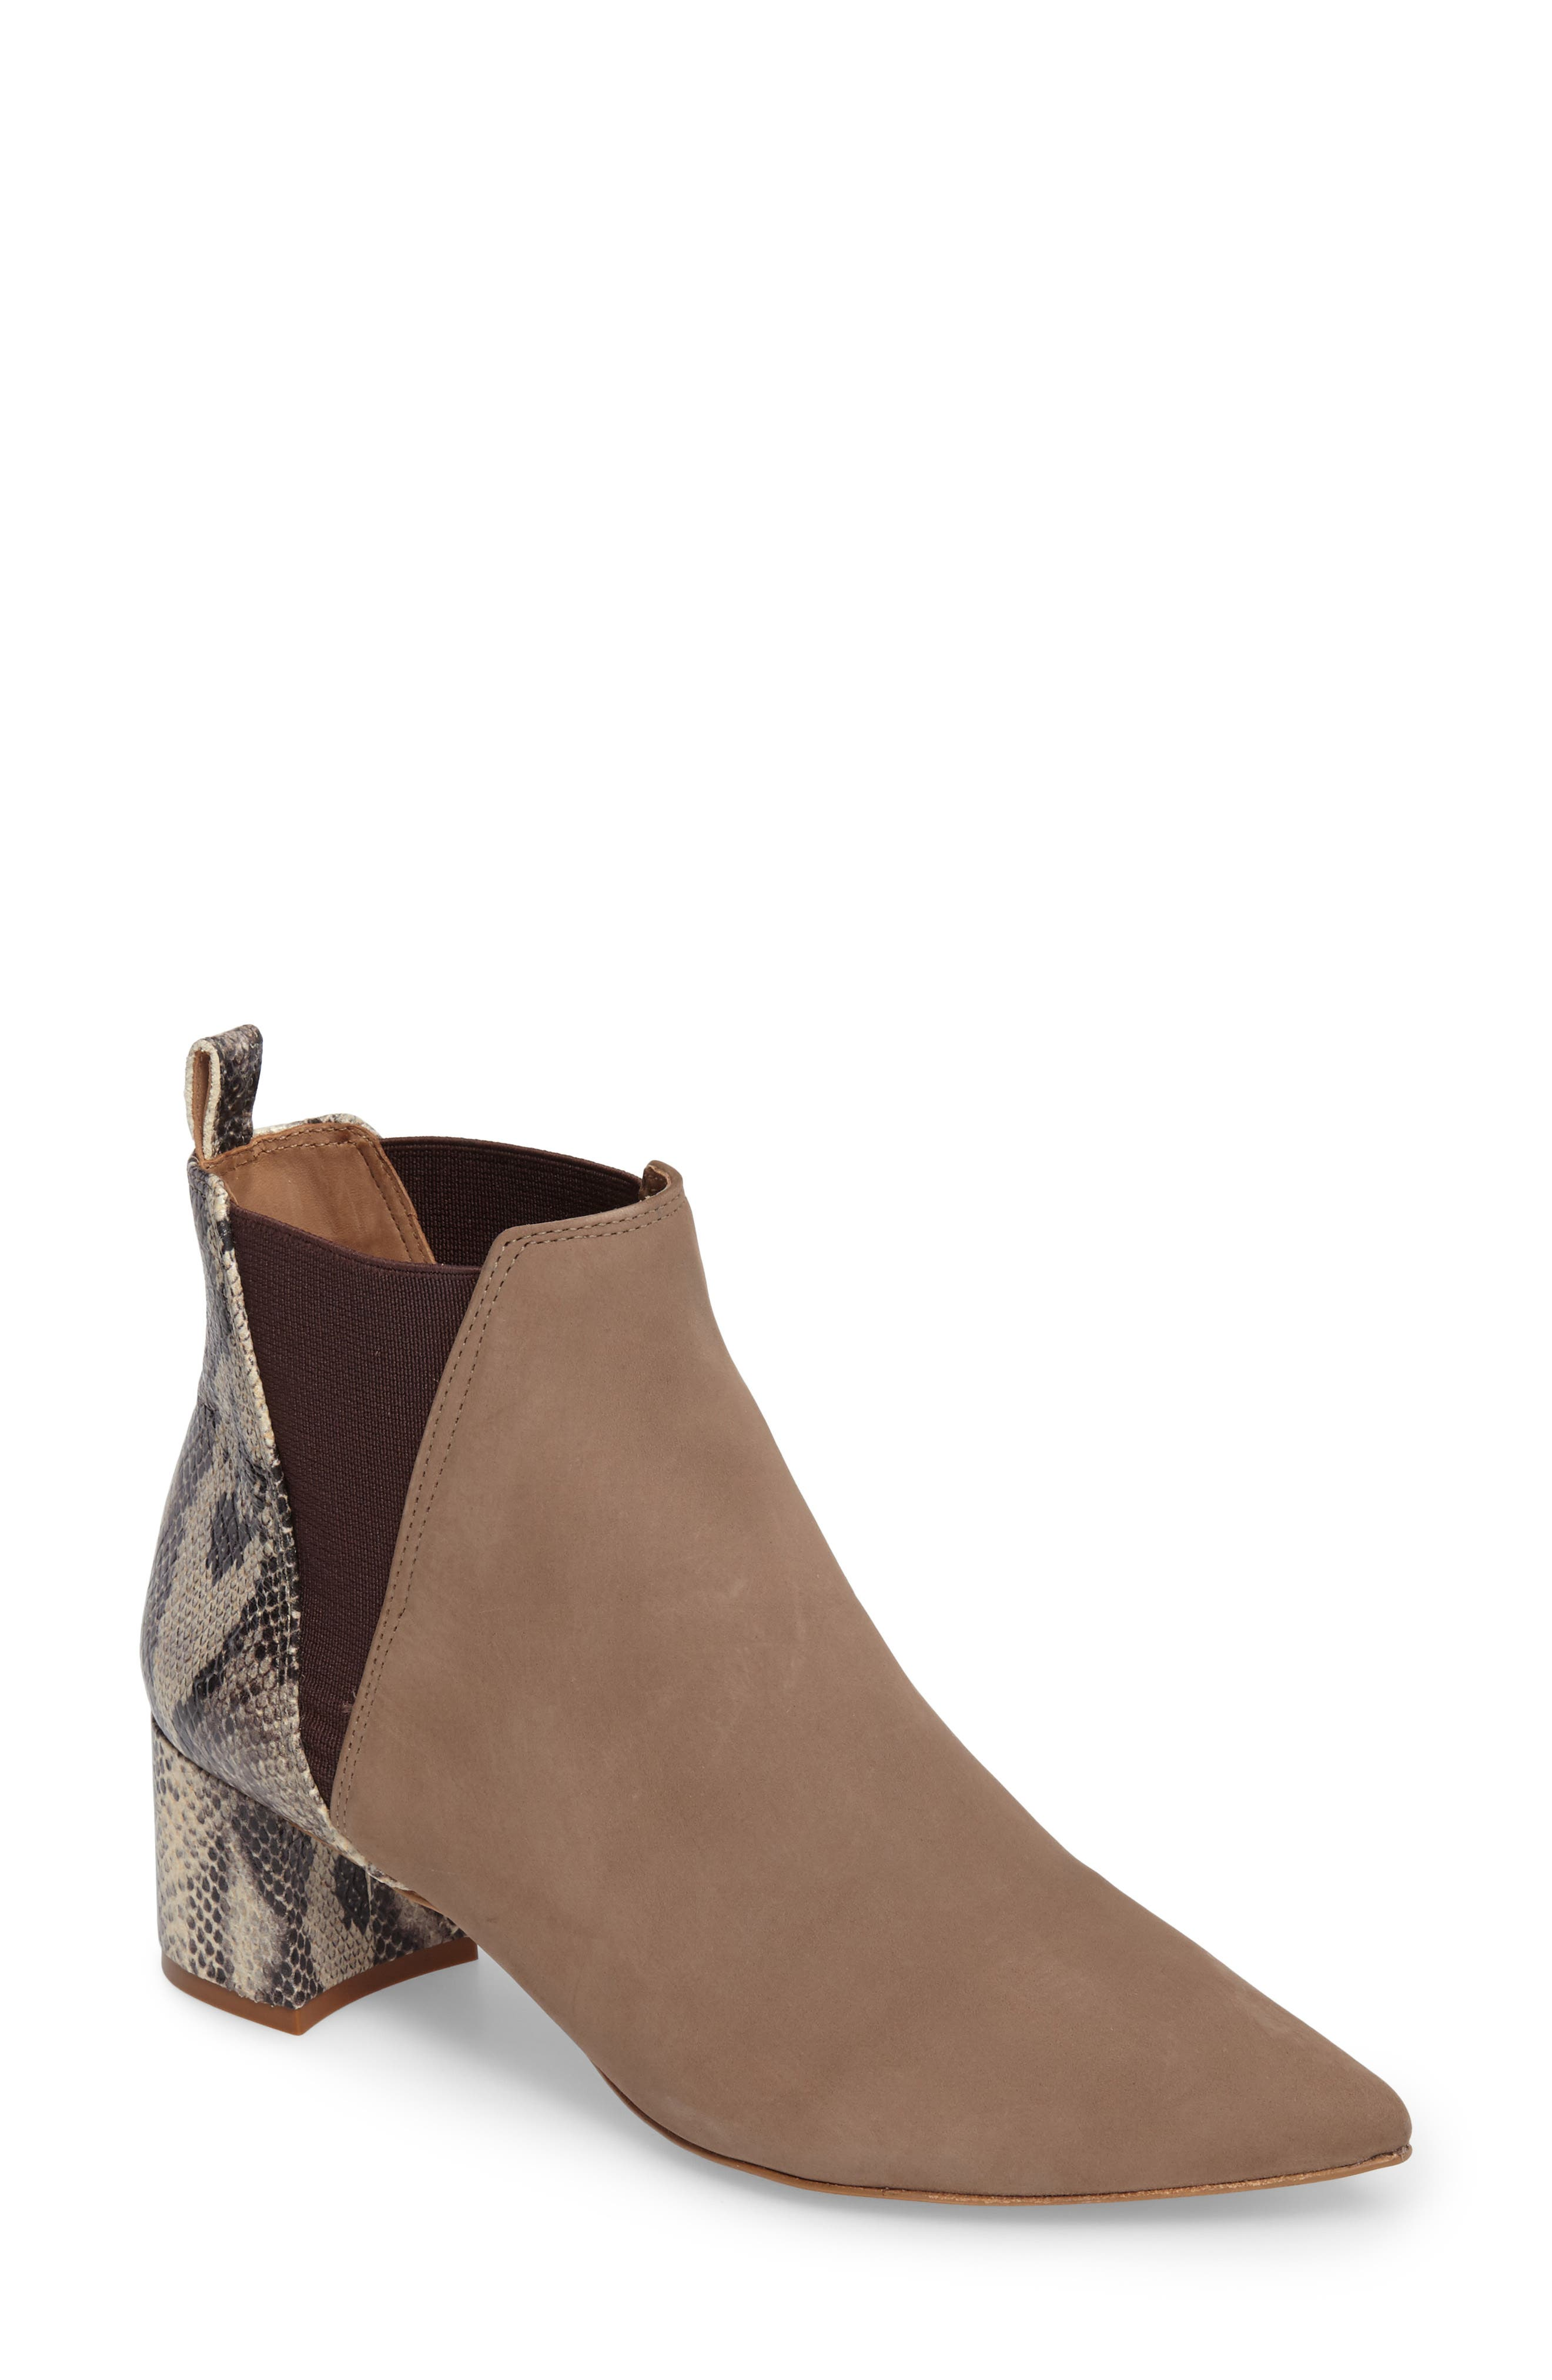 Renita Pointy Toe Chelsea Bootie,                         Main,                         color, Taupe Snake Print Suede